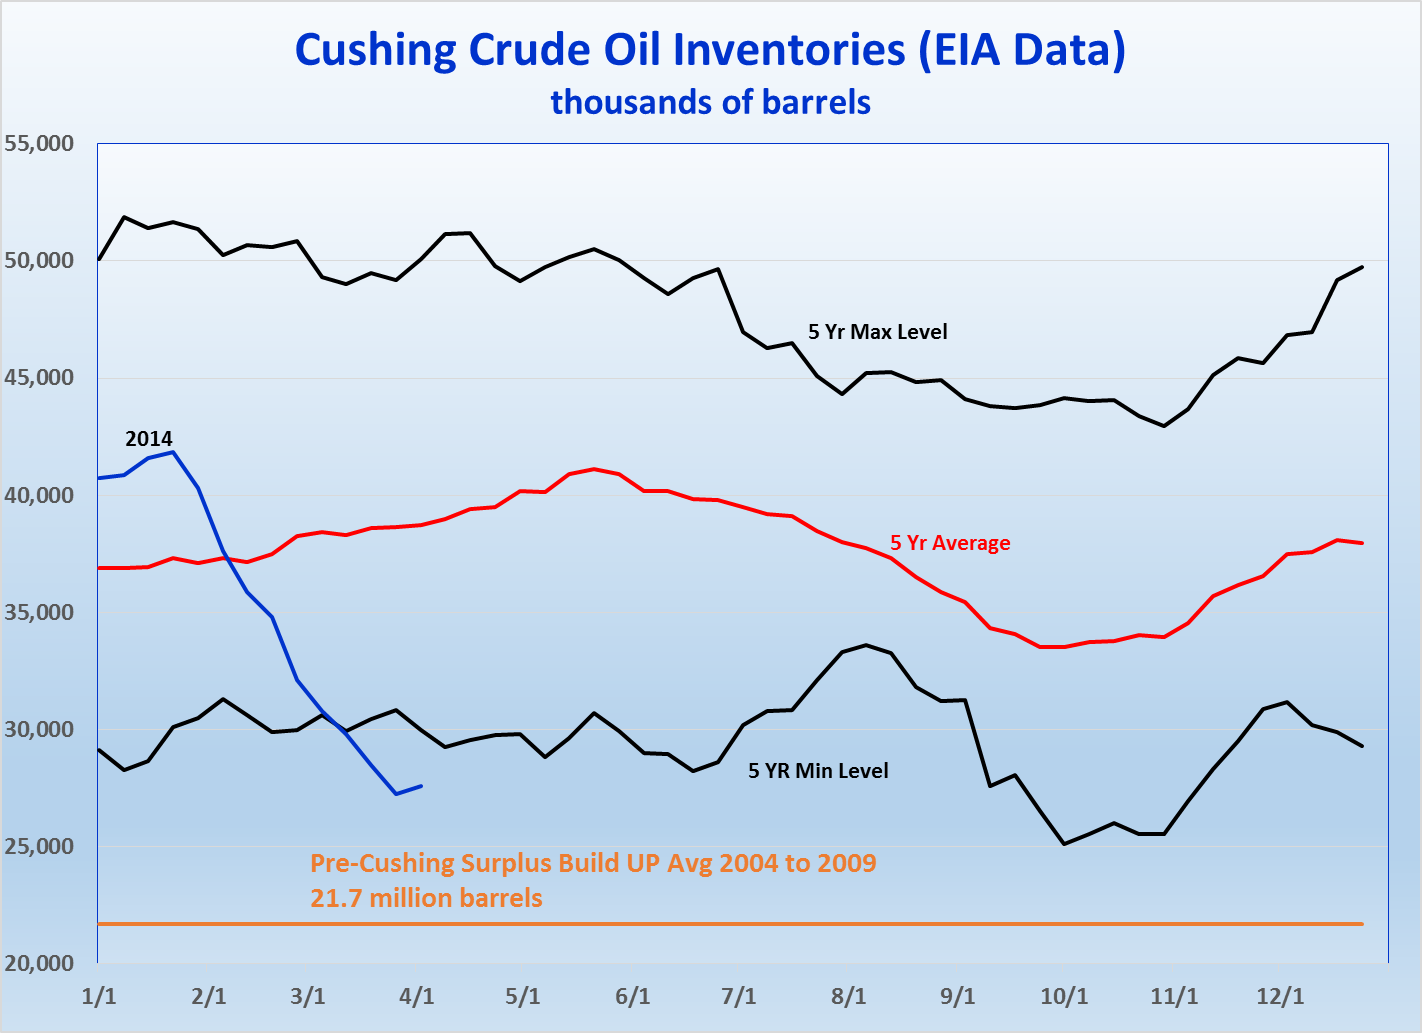 Brent/WTI on the Road to Normalcy | EMI Energy Market Insight